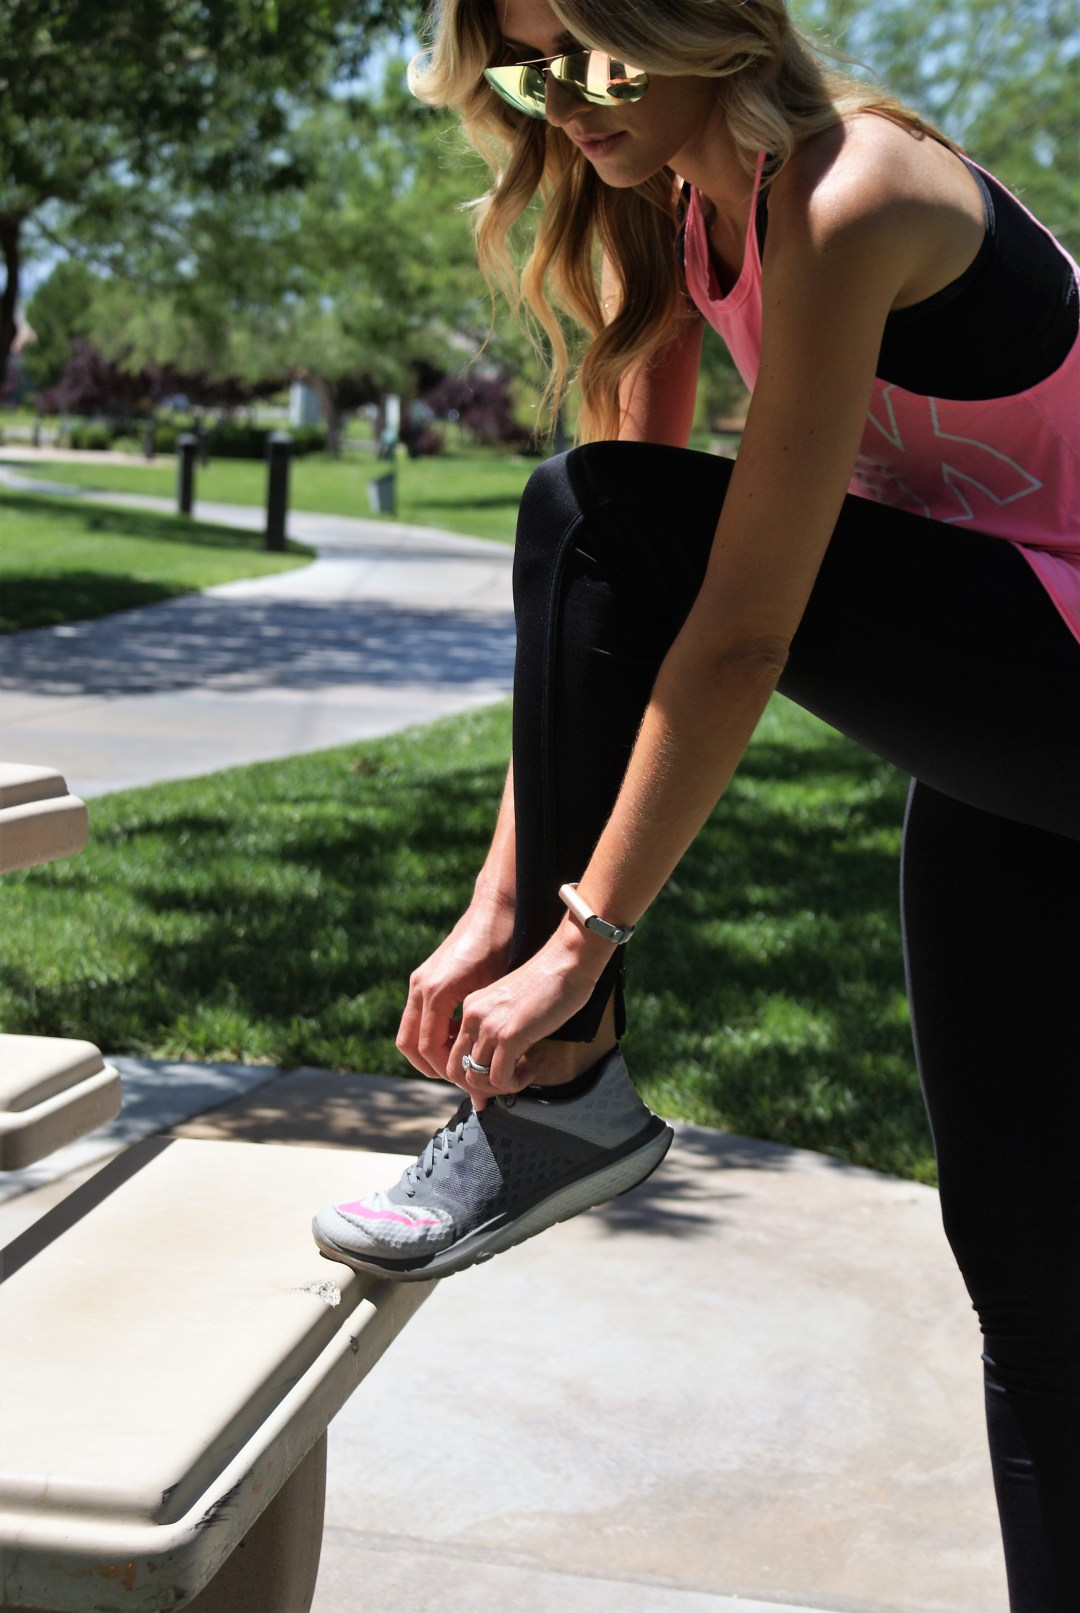 Working Out With Misfit Fitness Tracker- Diariesofdanielle.com